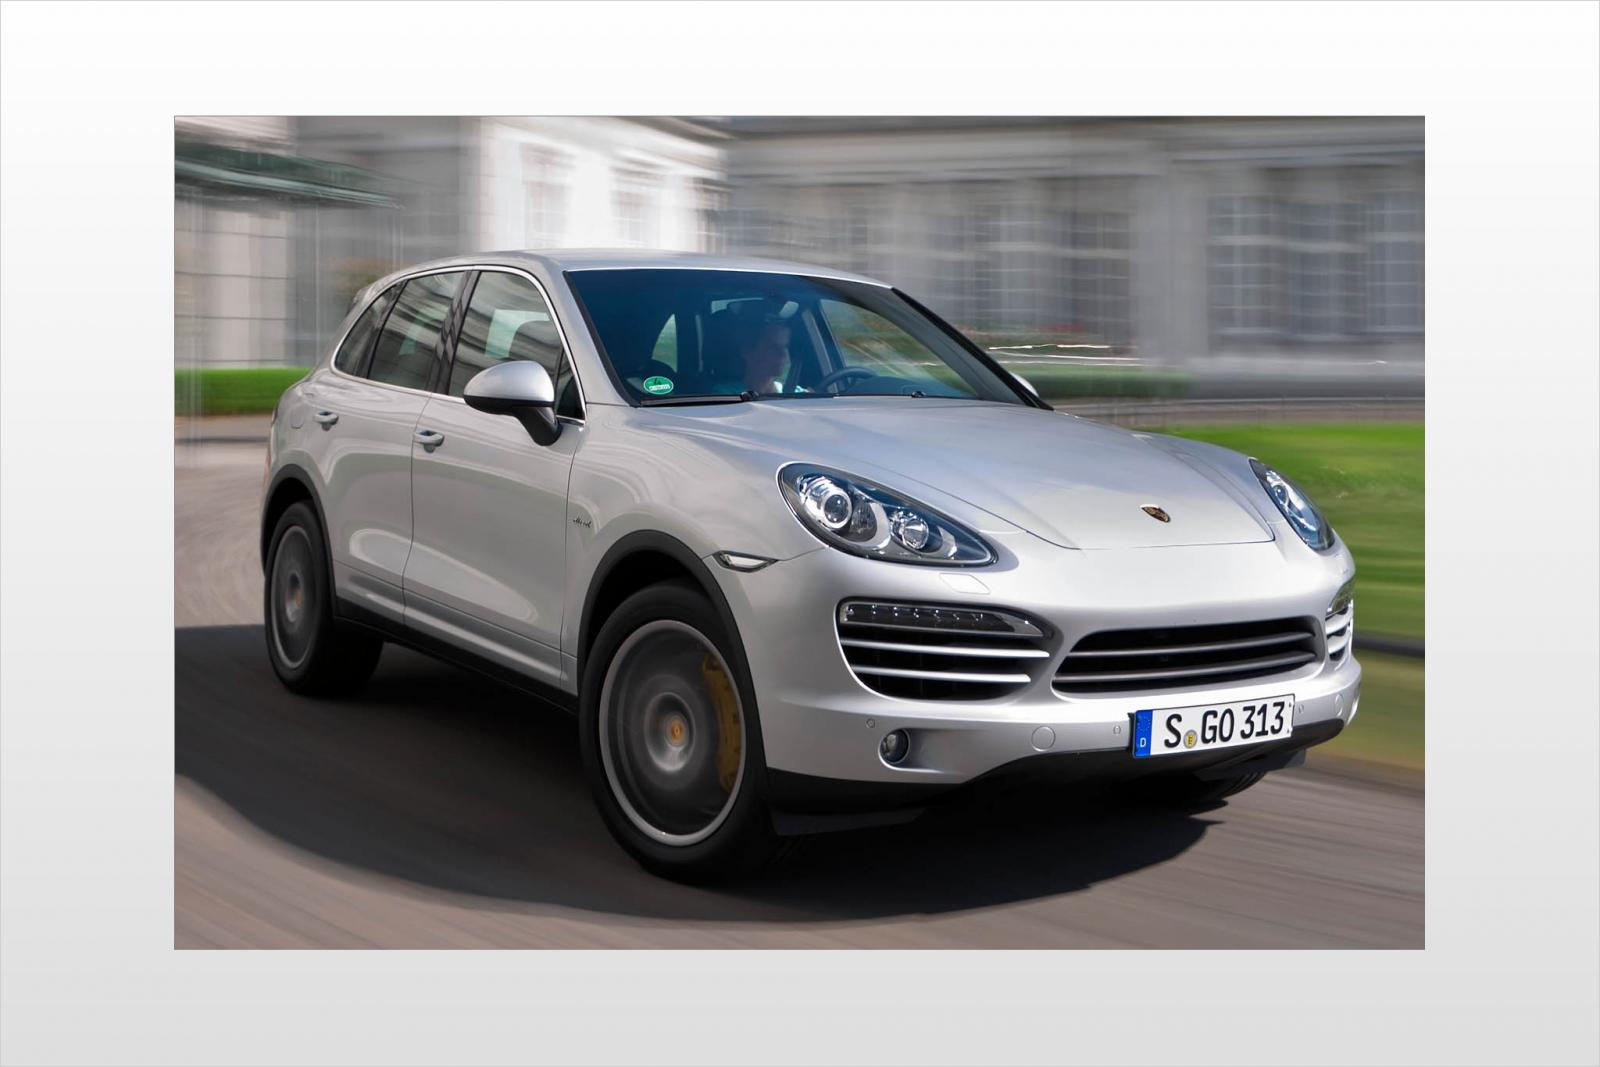 2014 porsche cayenne information and photos zombiedrive. Black Bedroom Furniture Sets. Home Design Ideas